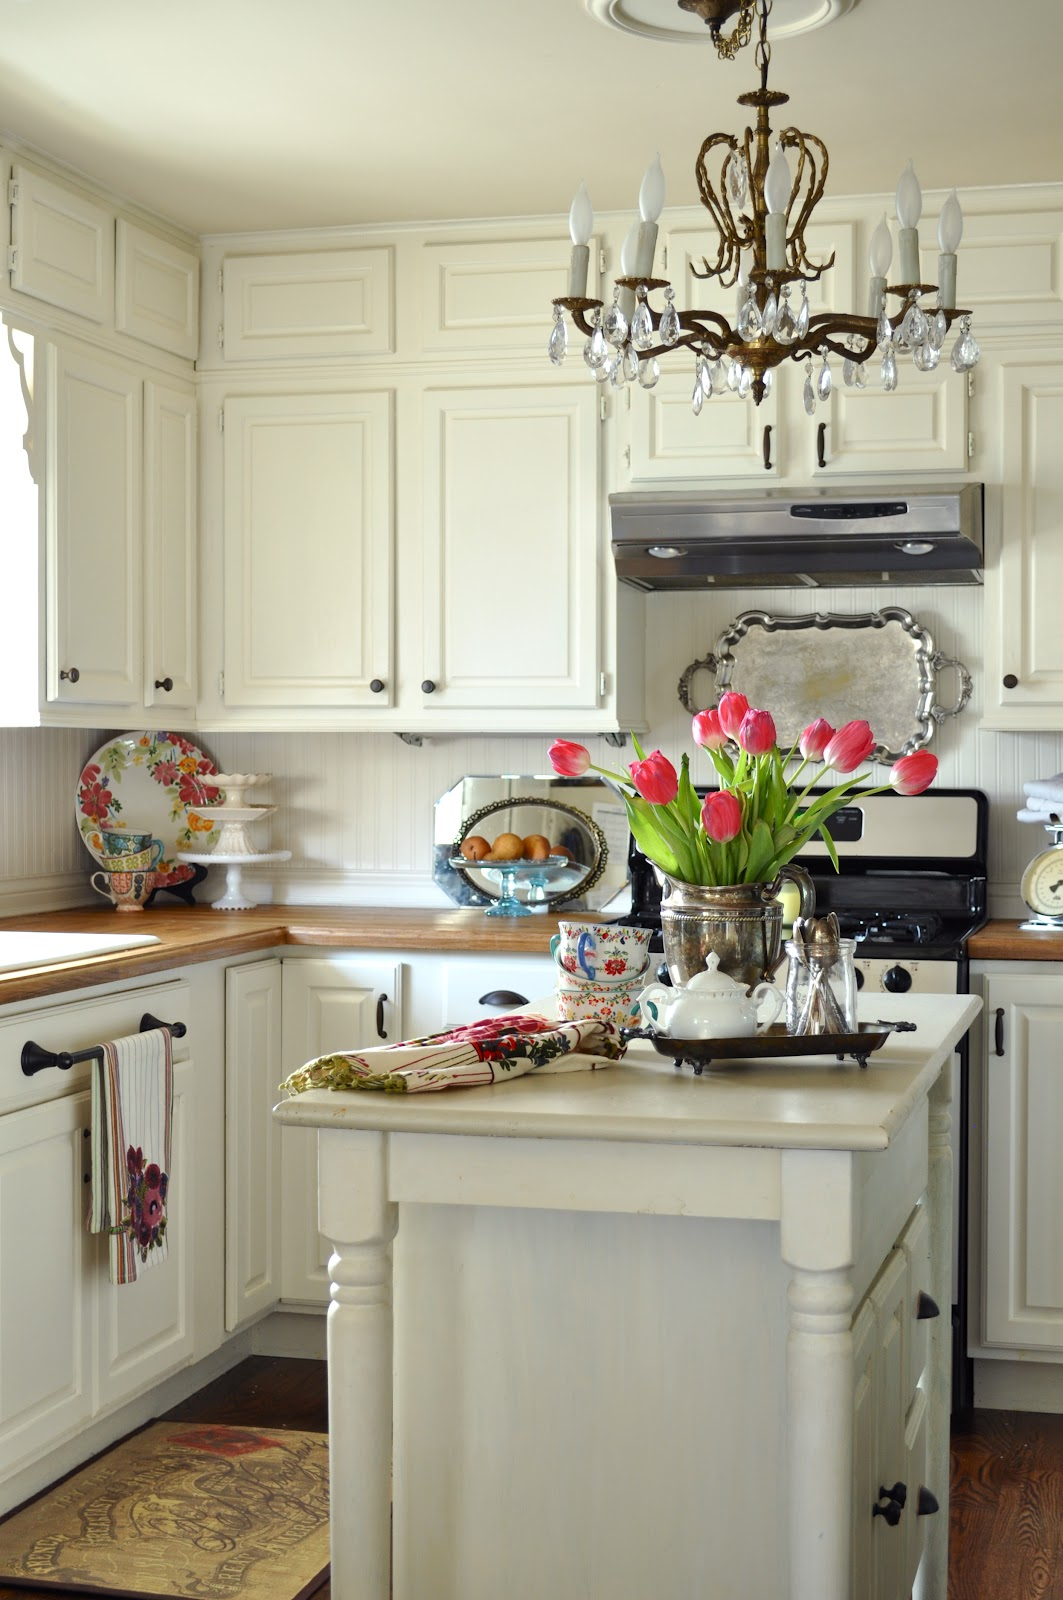 Fullsize Of Country Cottage Kitchen Cabinets